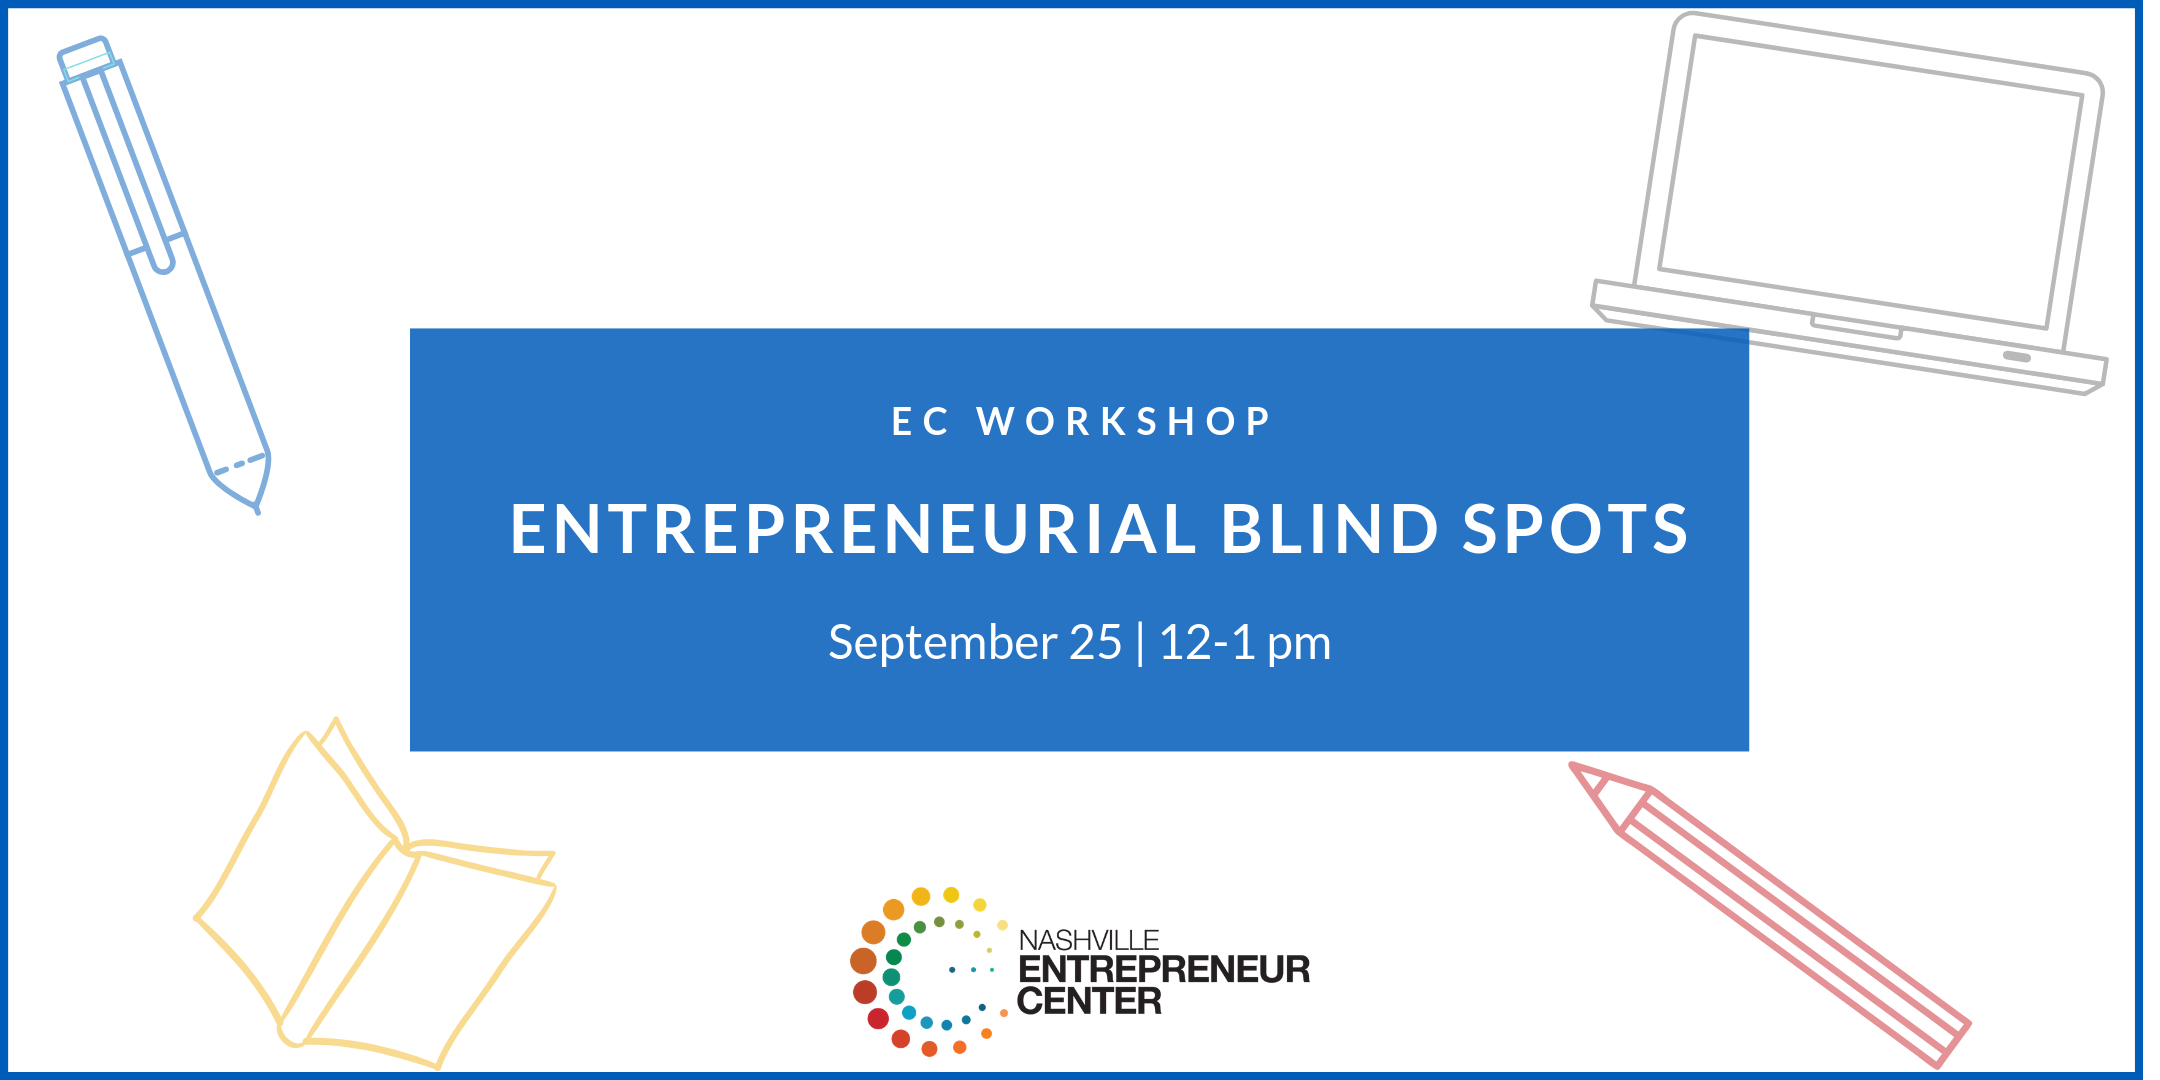 This workshop, taught by EC Advisor Bill Brennan, will talk about common entrepreneurial blind spots entrepreneurs have and the tools to counteract.